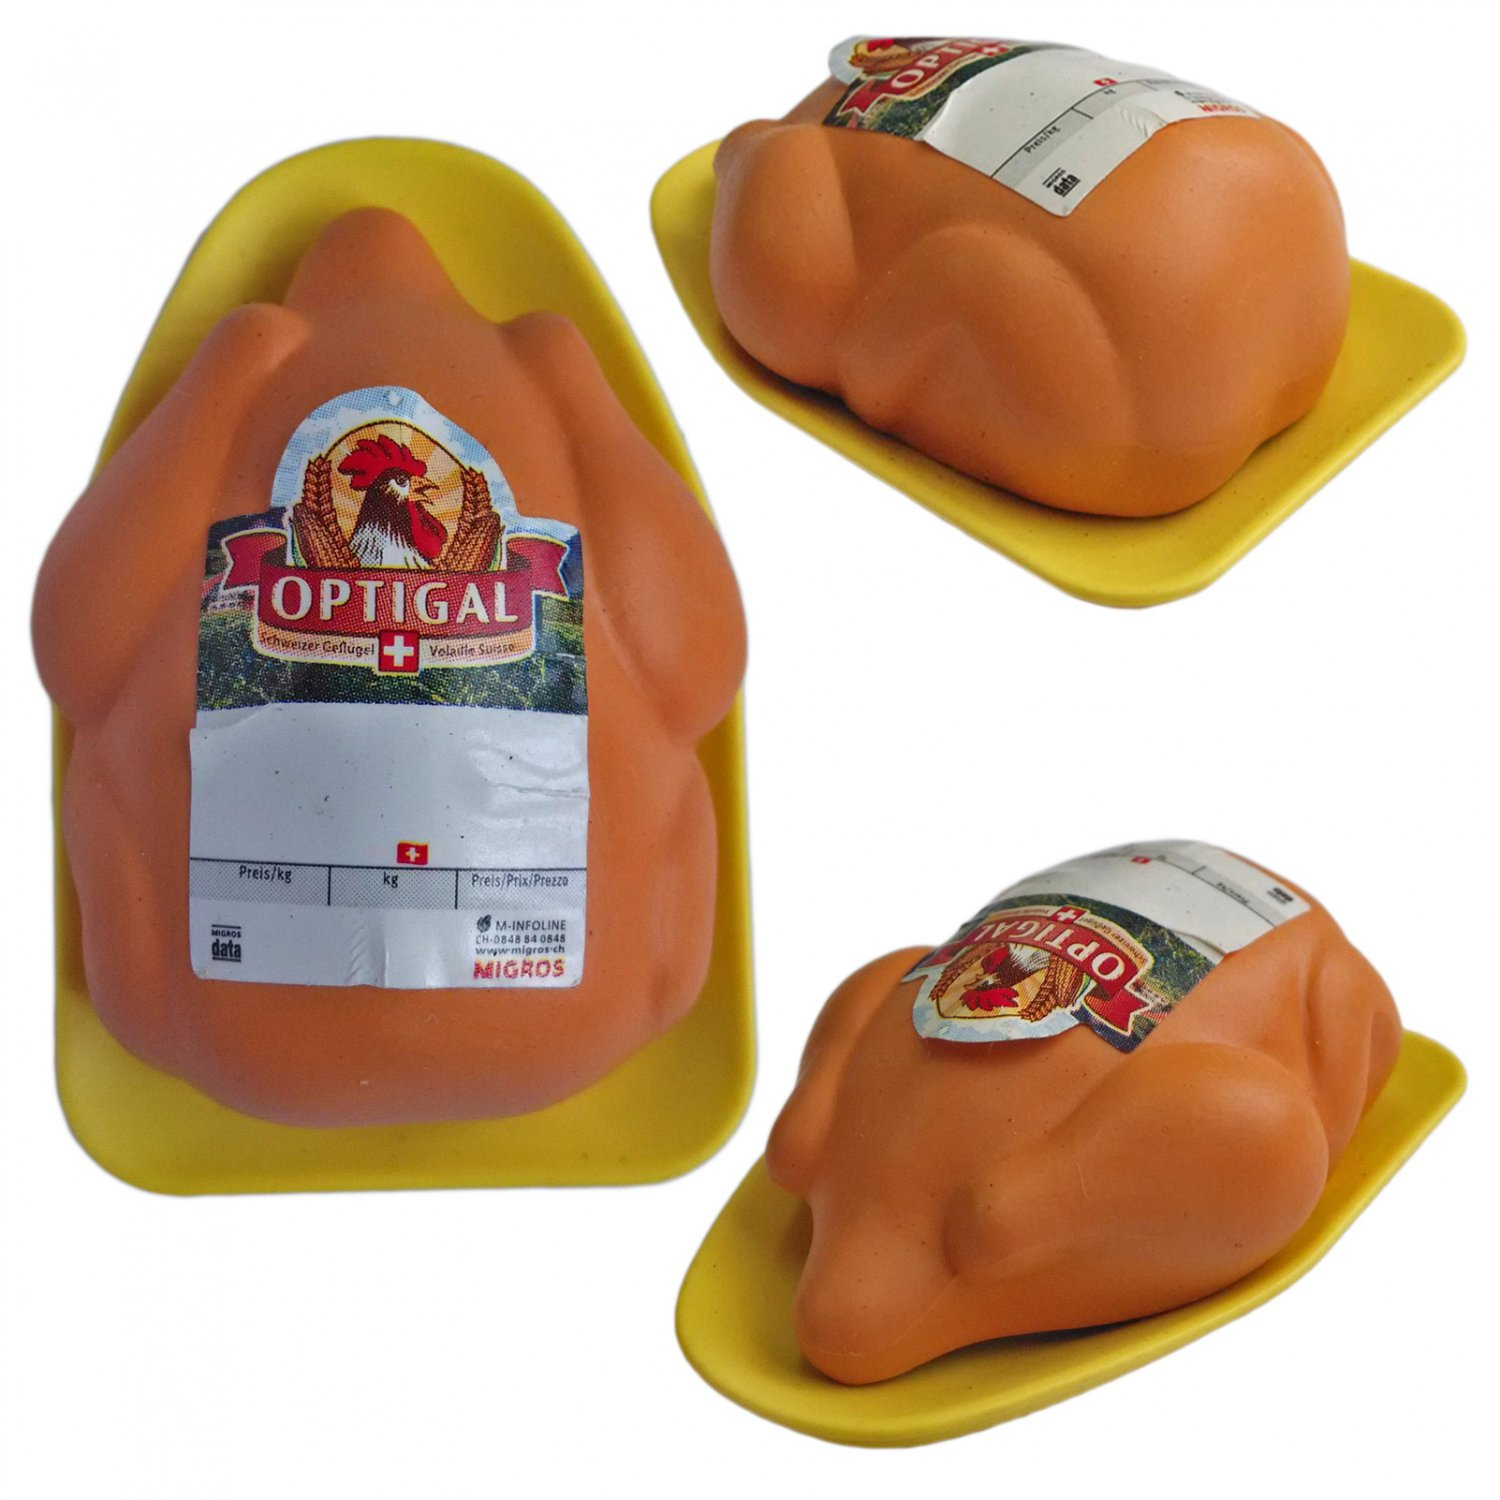 Roasted Turkey Chicken Thanksgiving Food 1/12 Doll's House Dollhouse Miniature #13303